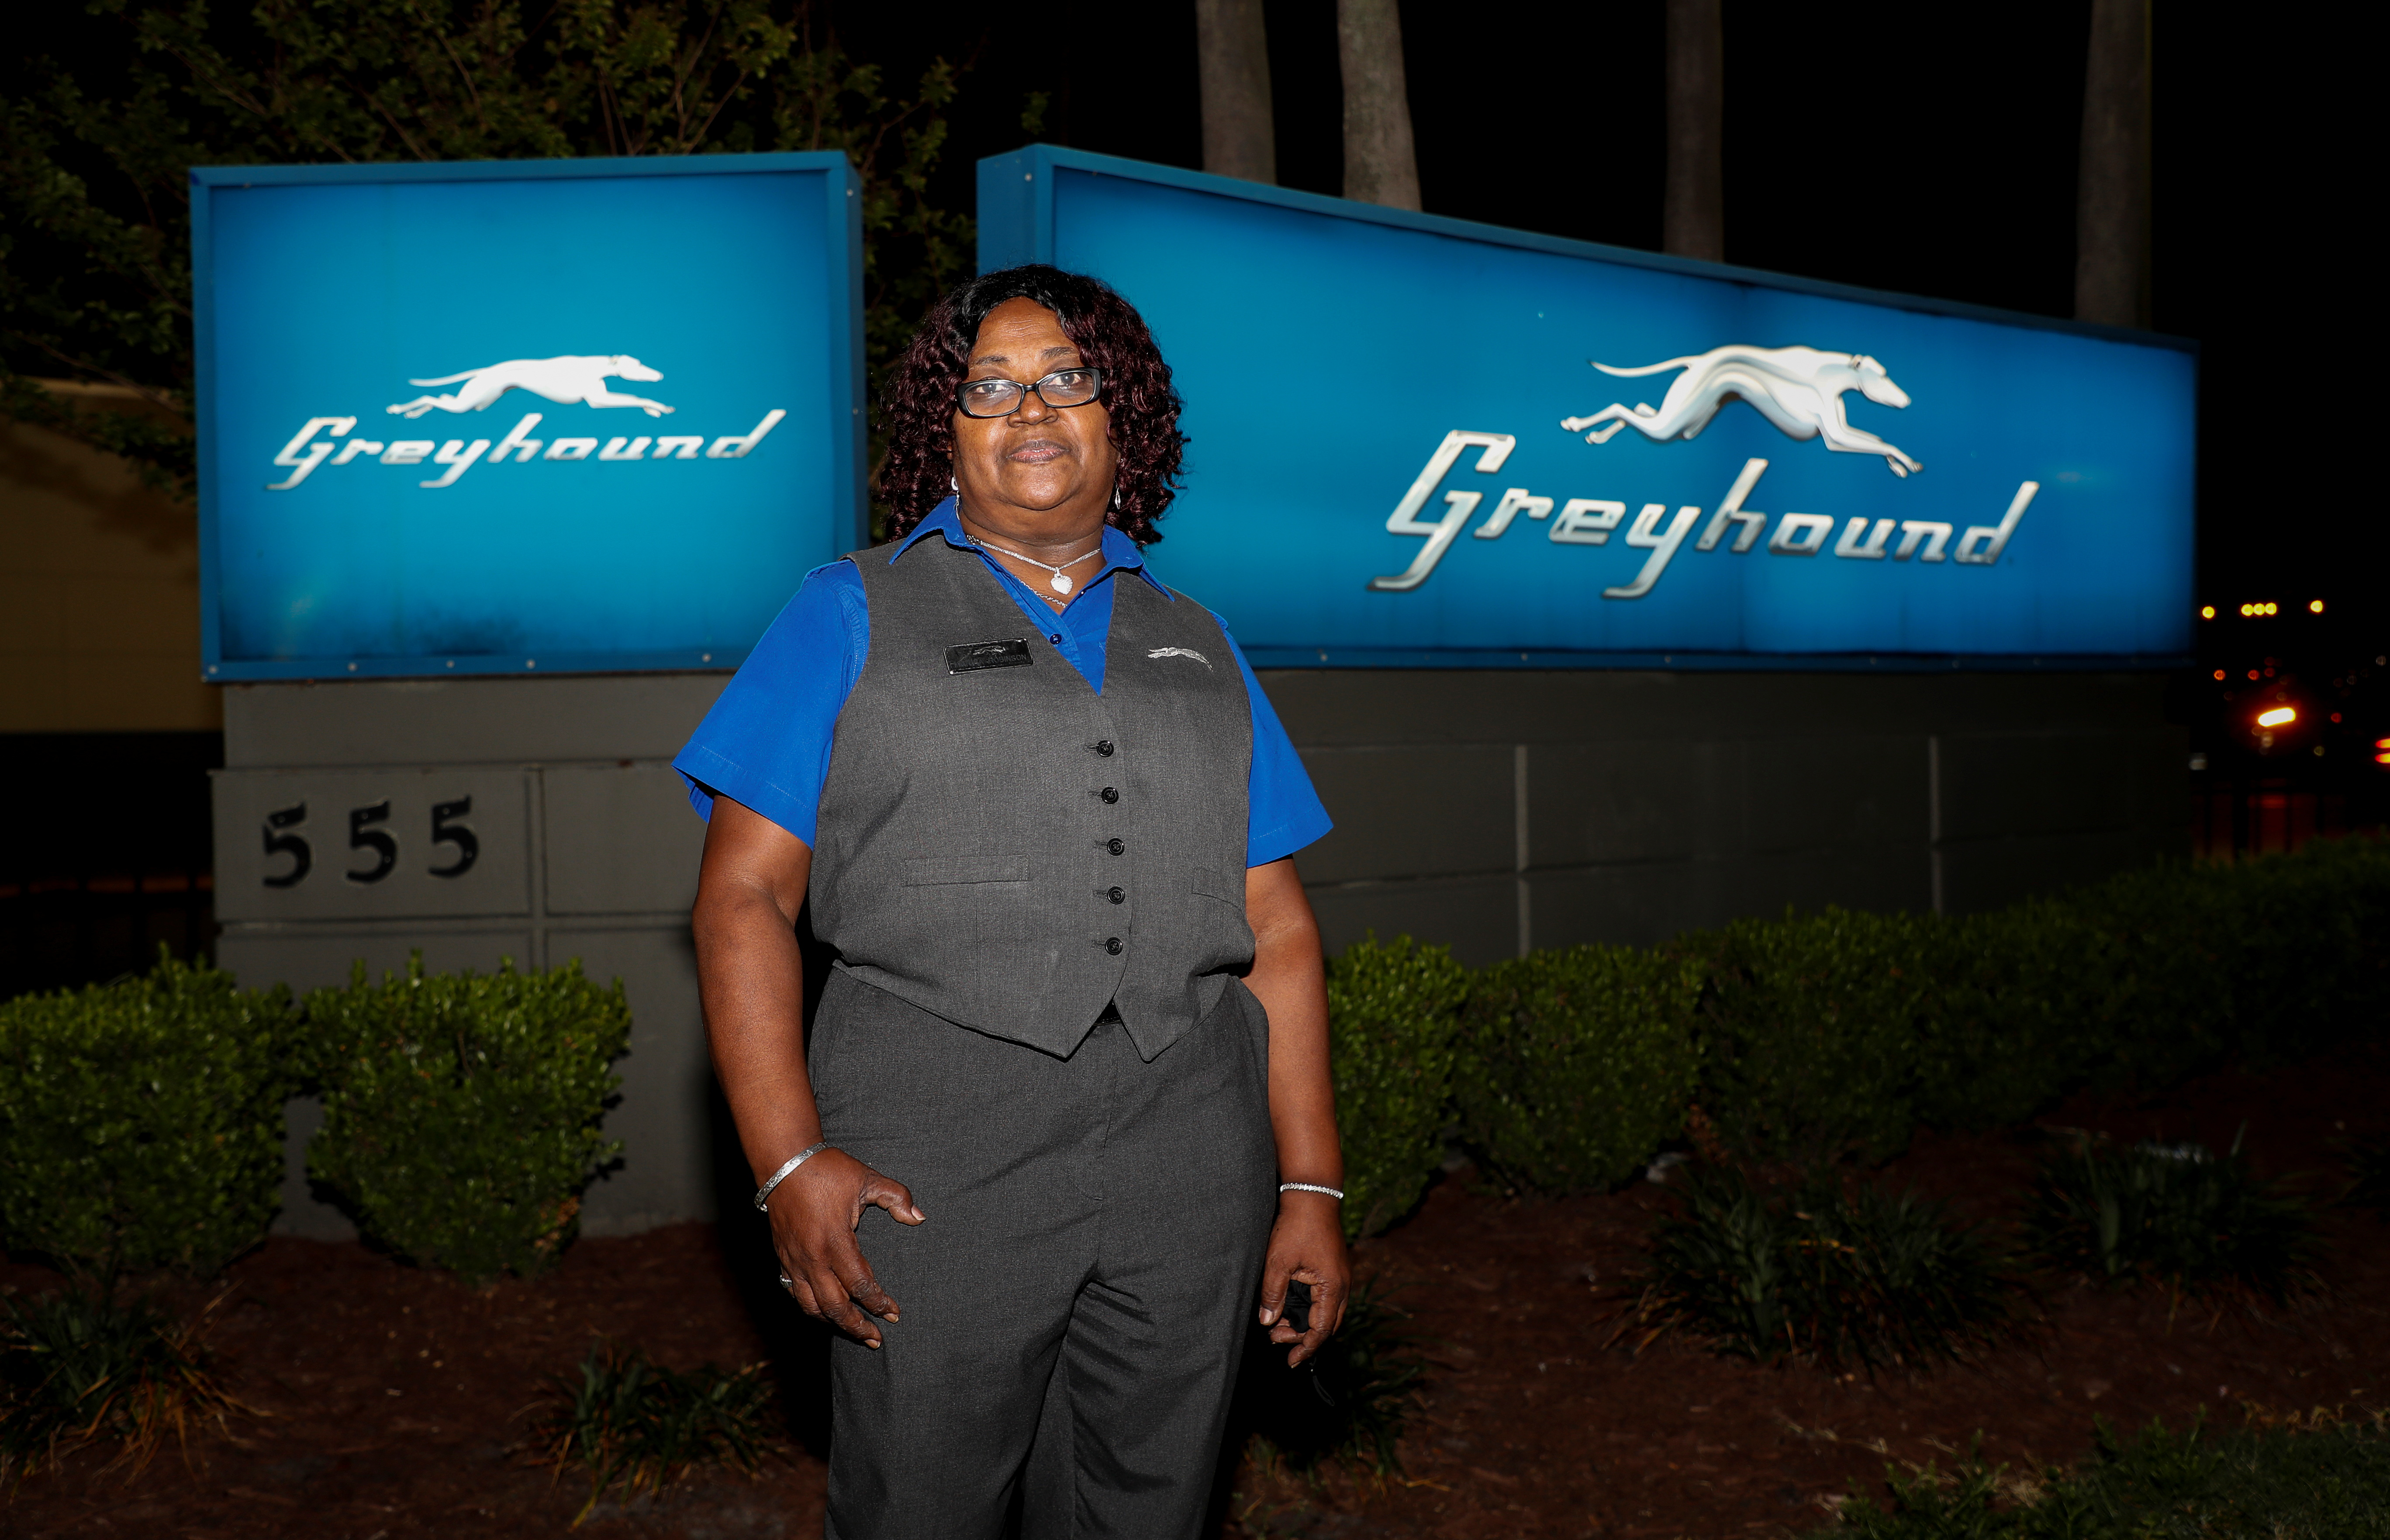 Greyhound Bus driver Marvia Robinson is seen after her overnight shift in Orlando, Florida, U.S., March 28, 2021. Picture taken March 28, 2021.  REUTERS/Joe Skipper